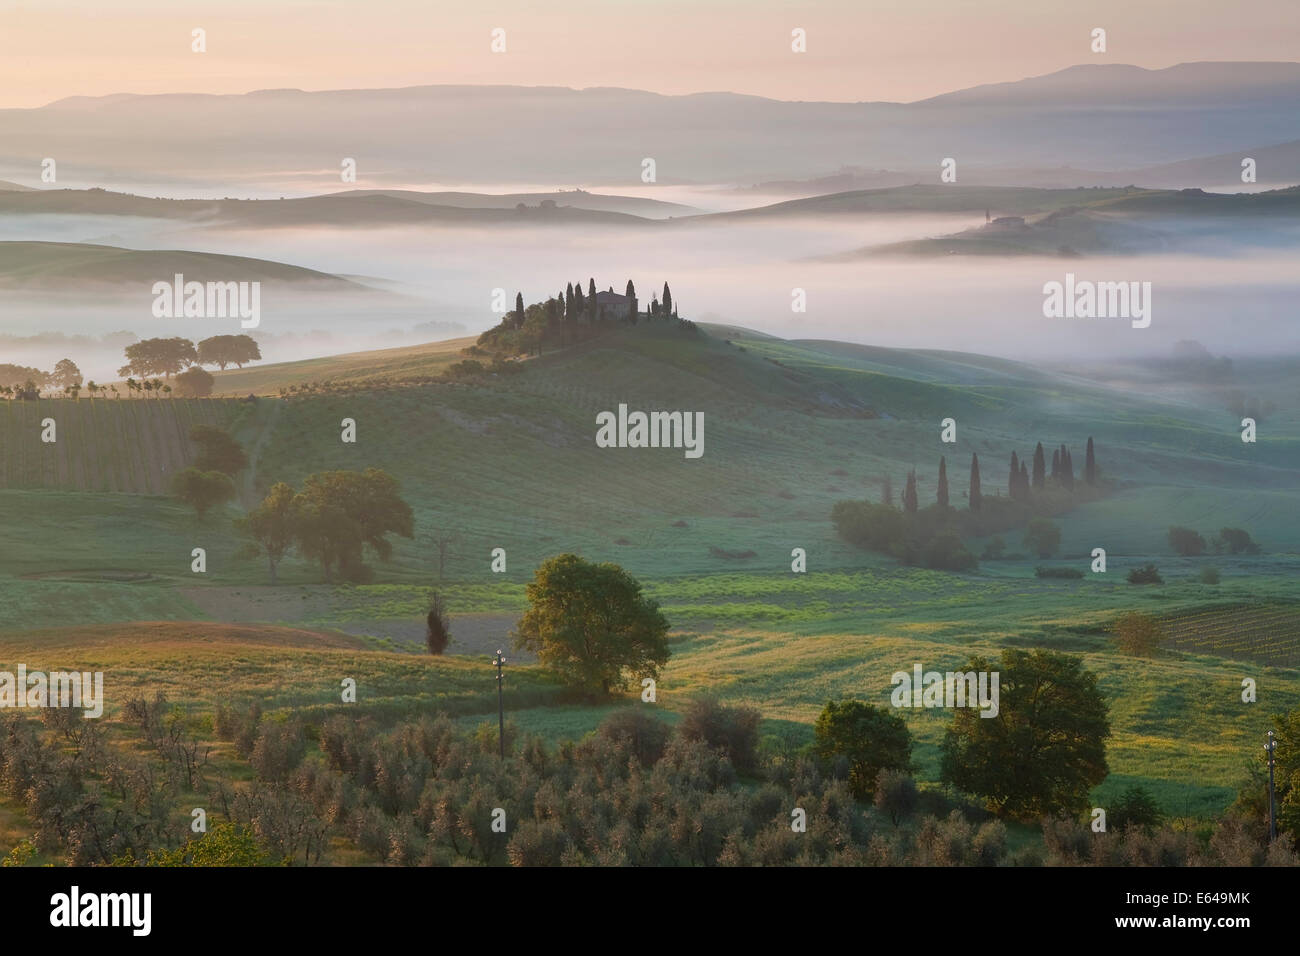 Farmhouse in Valley, Val d'Orcia, Tuscany, Italy - Stock Image